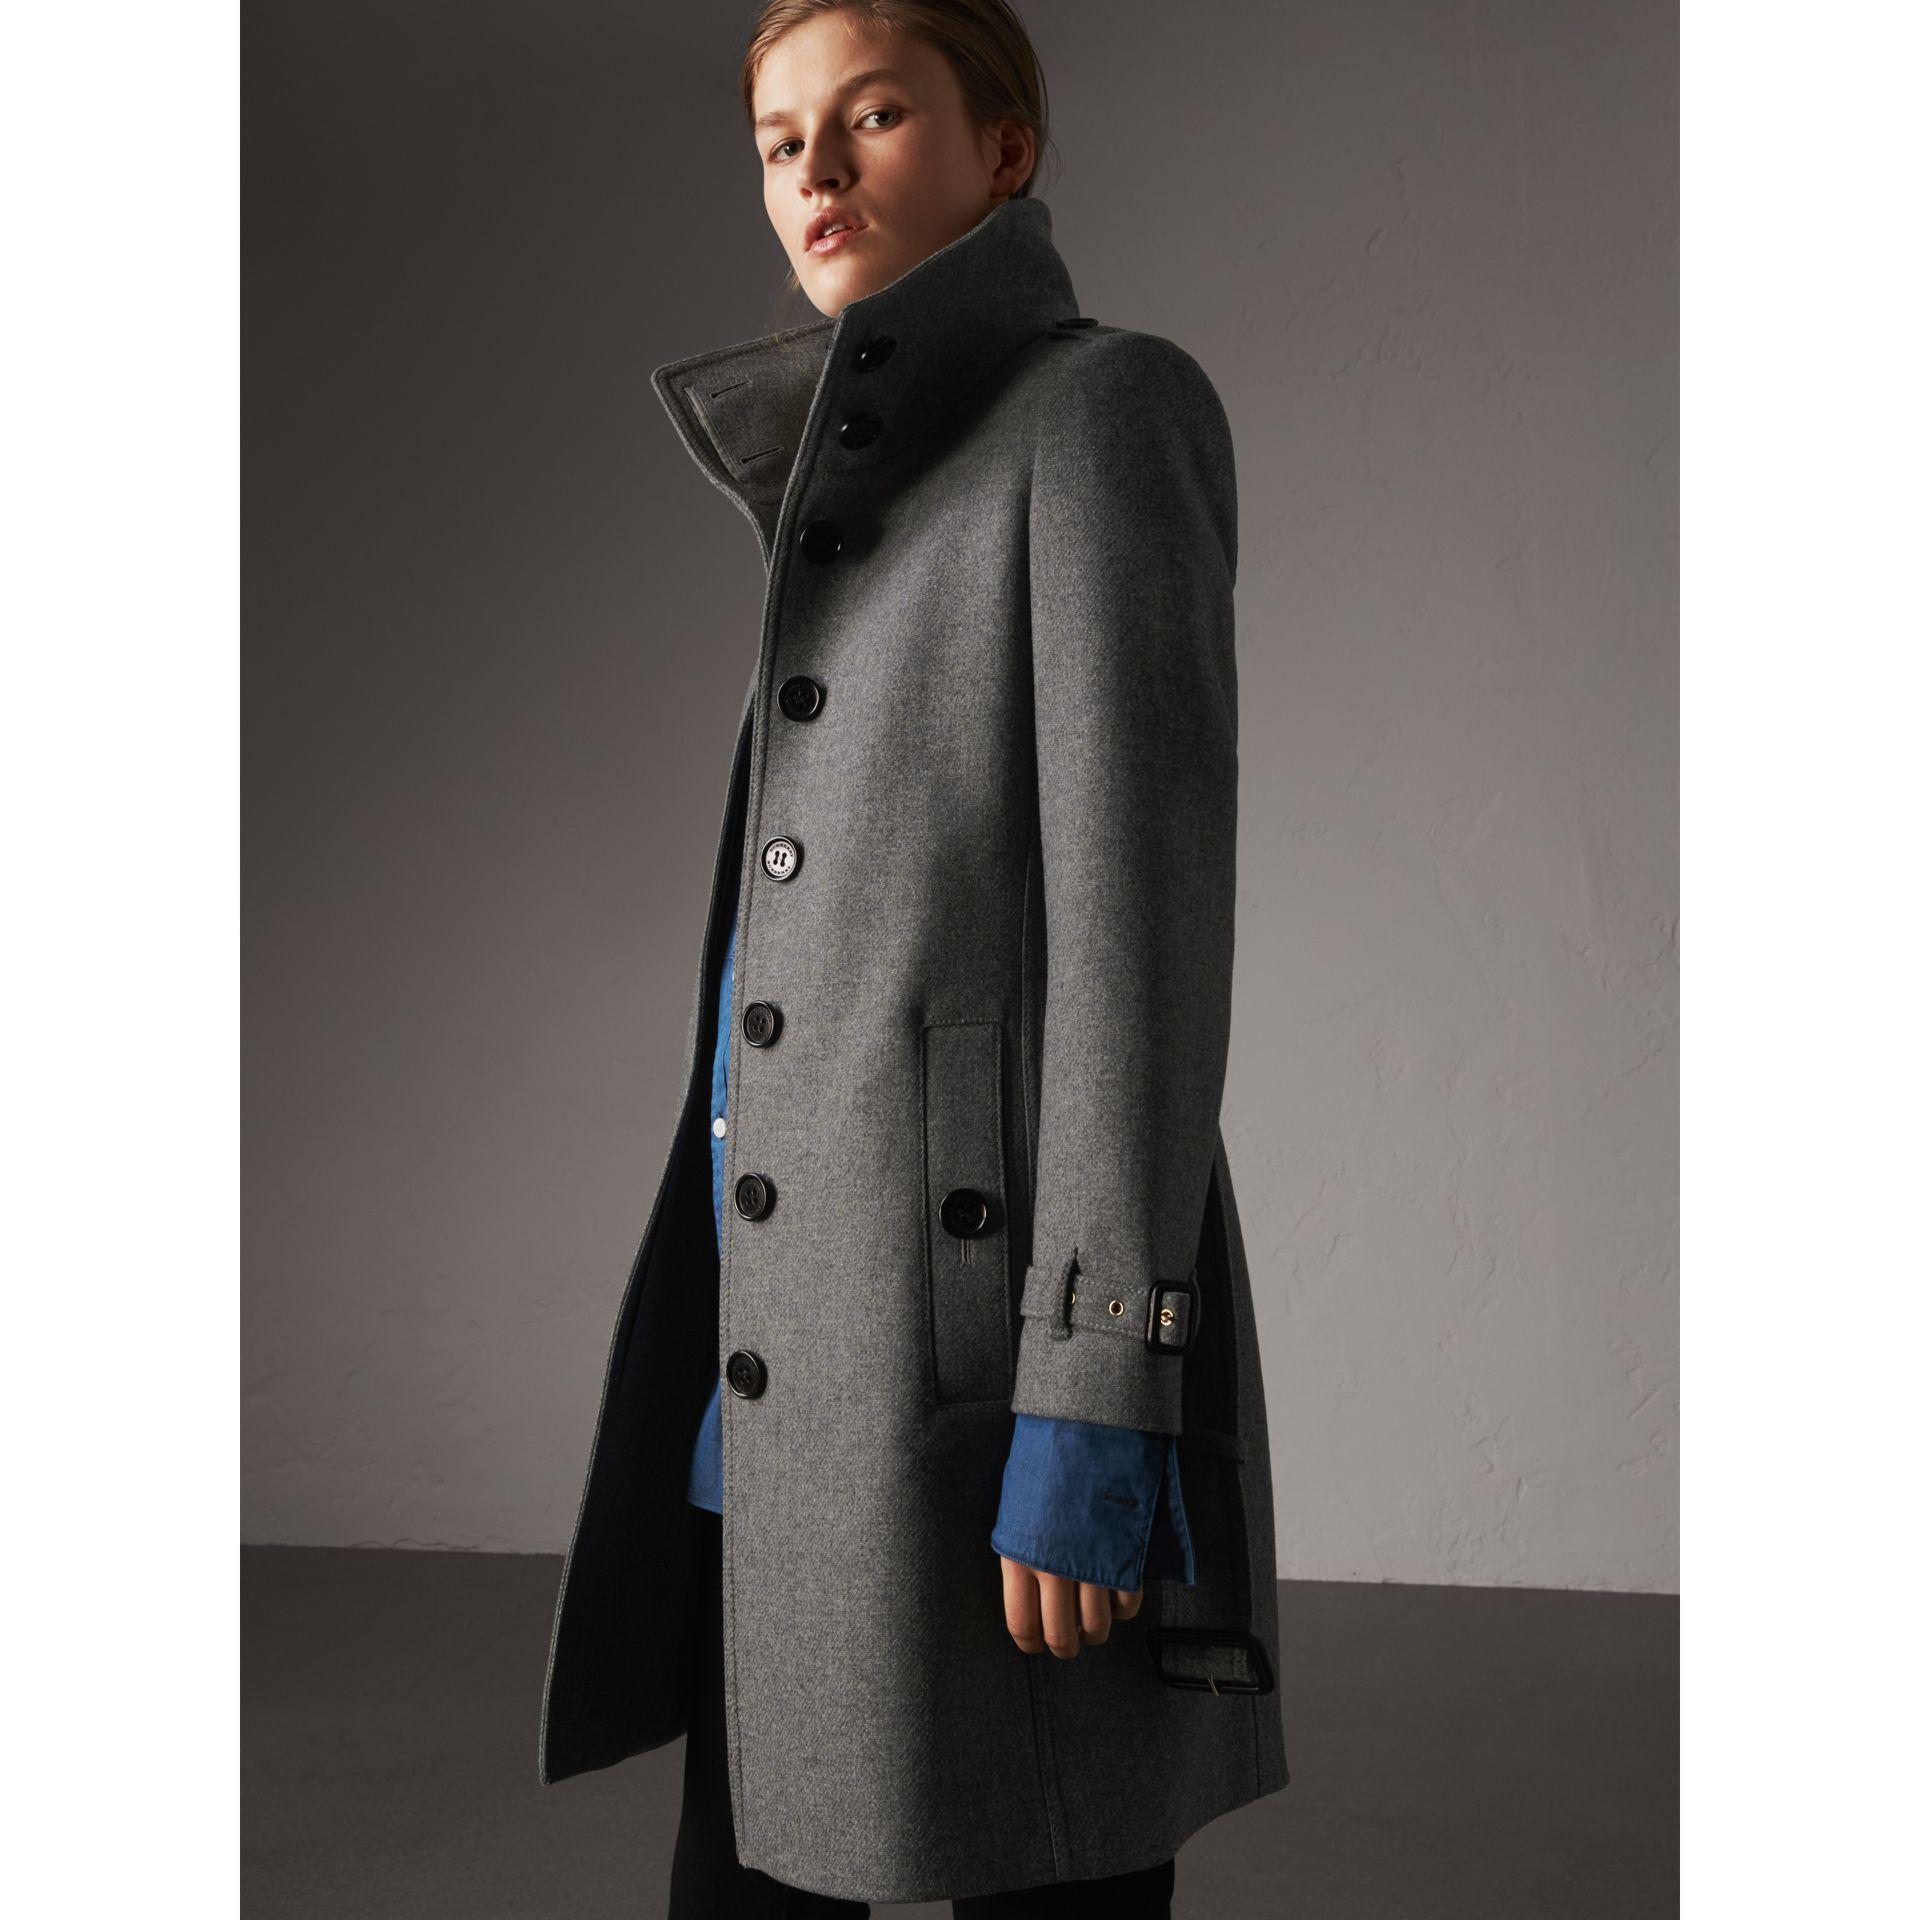 burberry technical wool cashmere funnel neck coat review